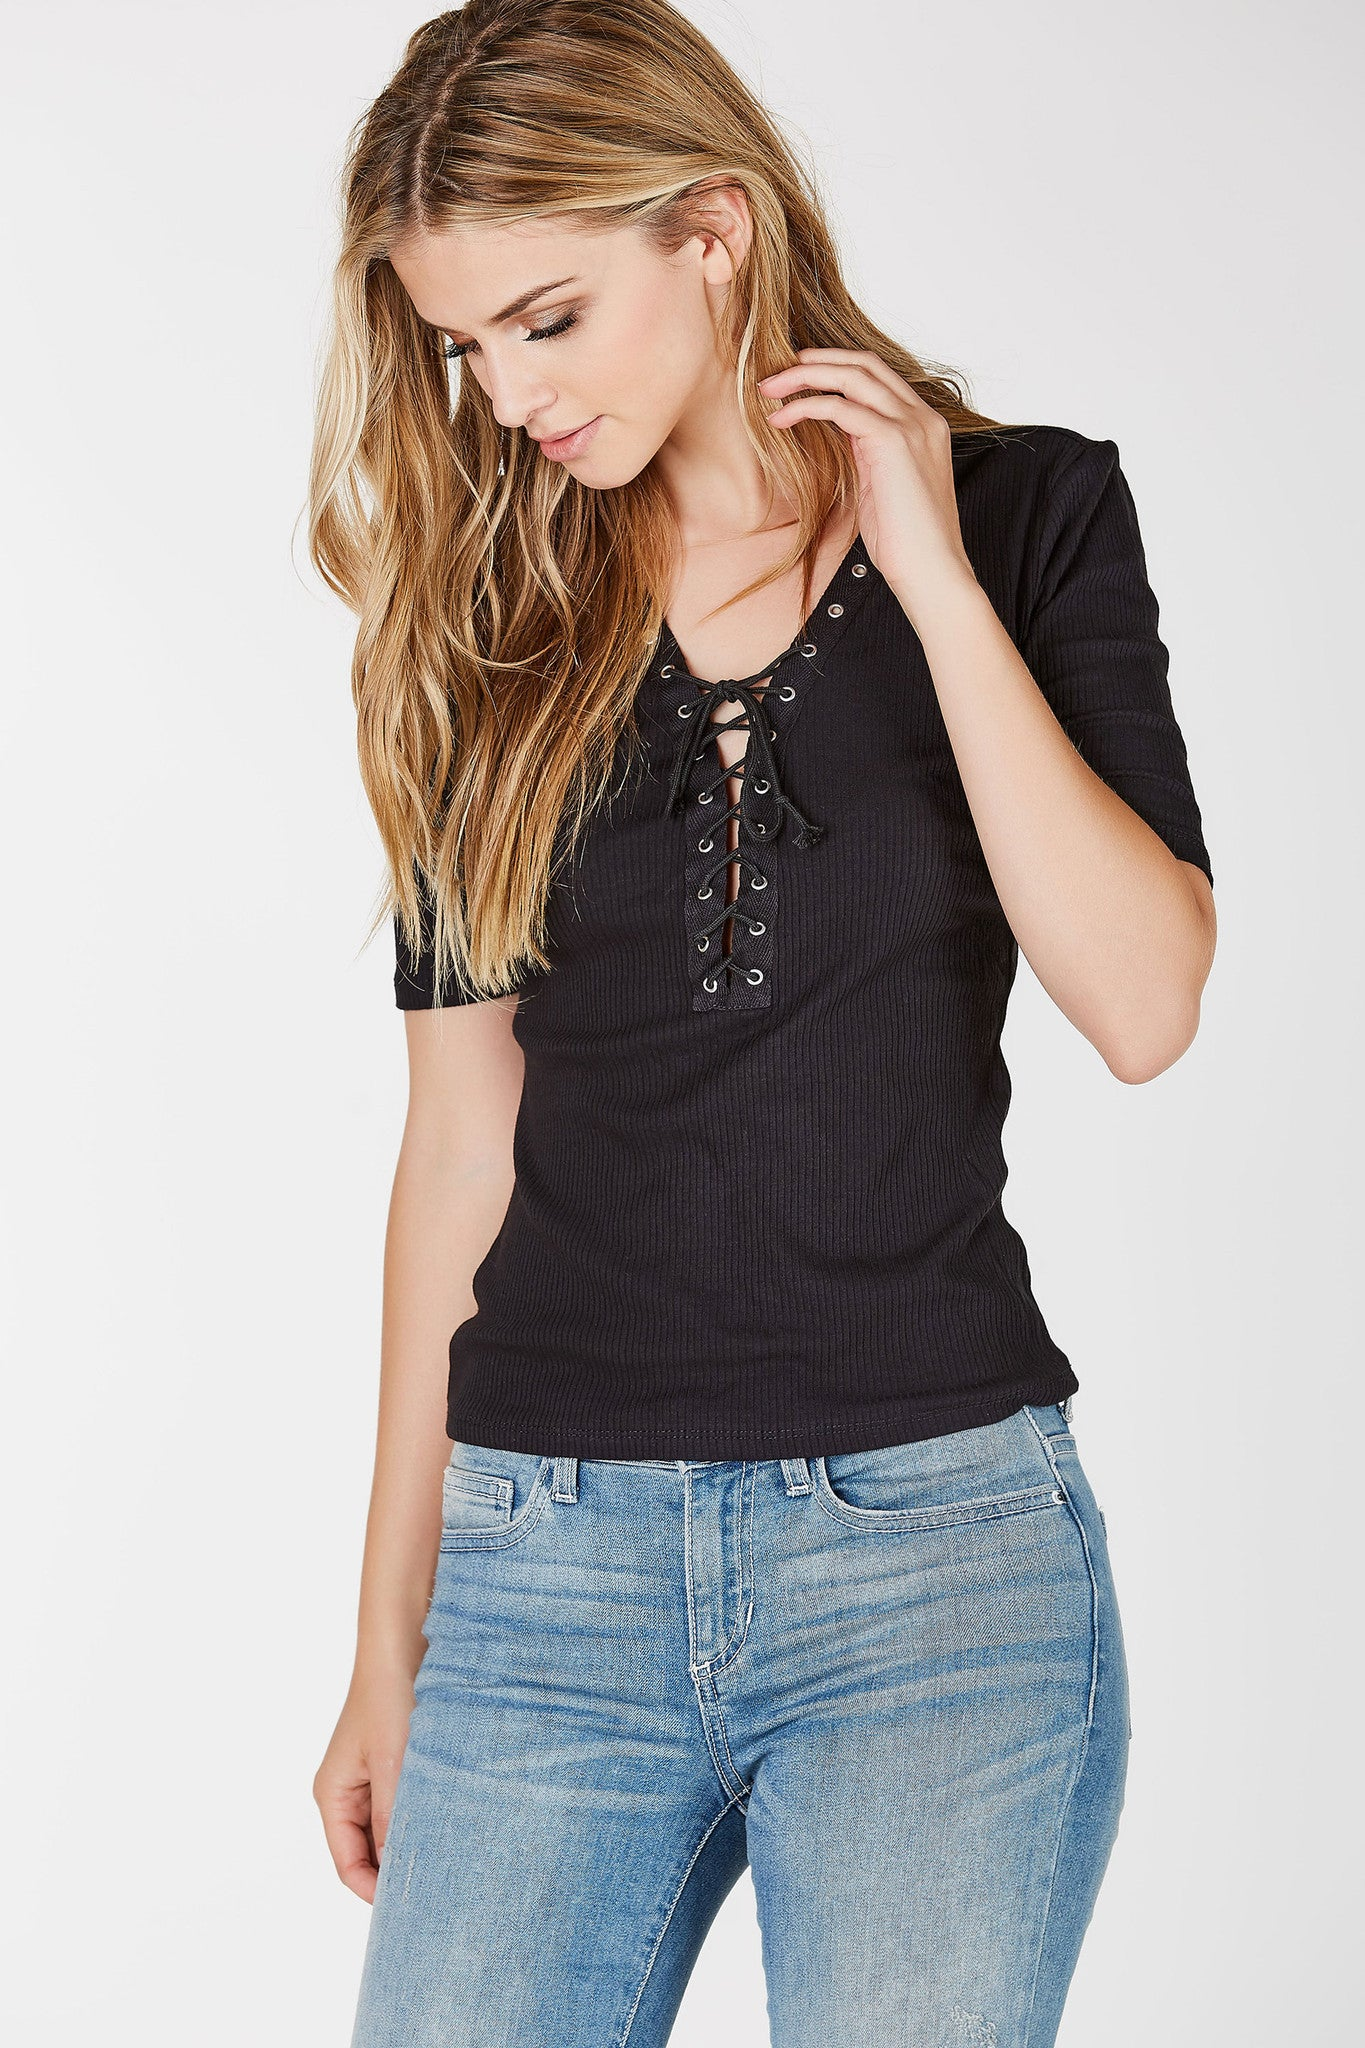 V-neck ribbed tee with short sleeves. Lace up design with eyelet detailing.